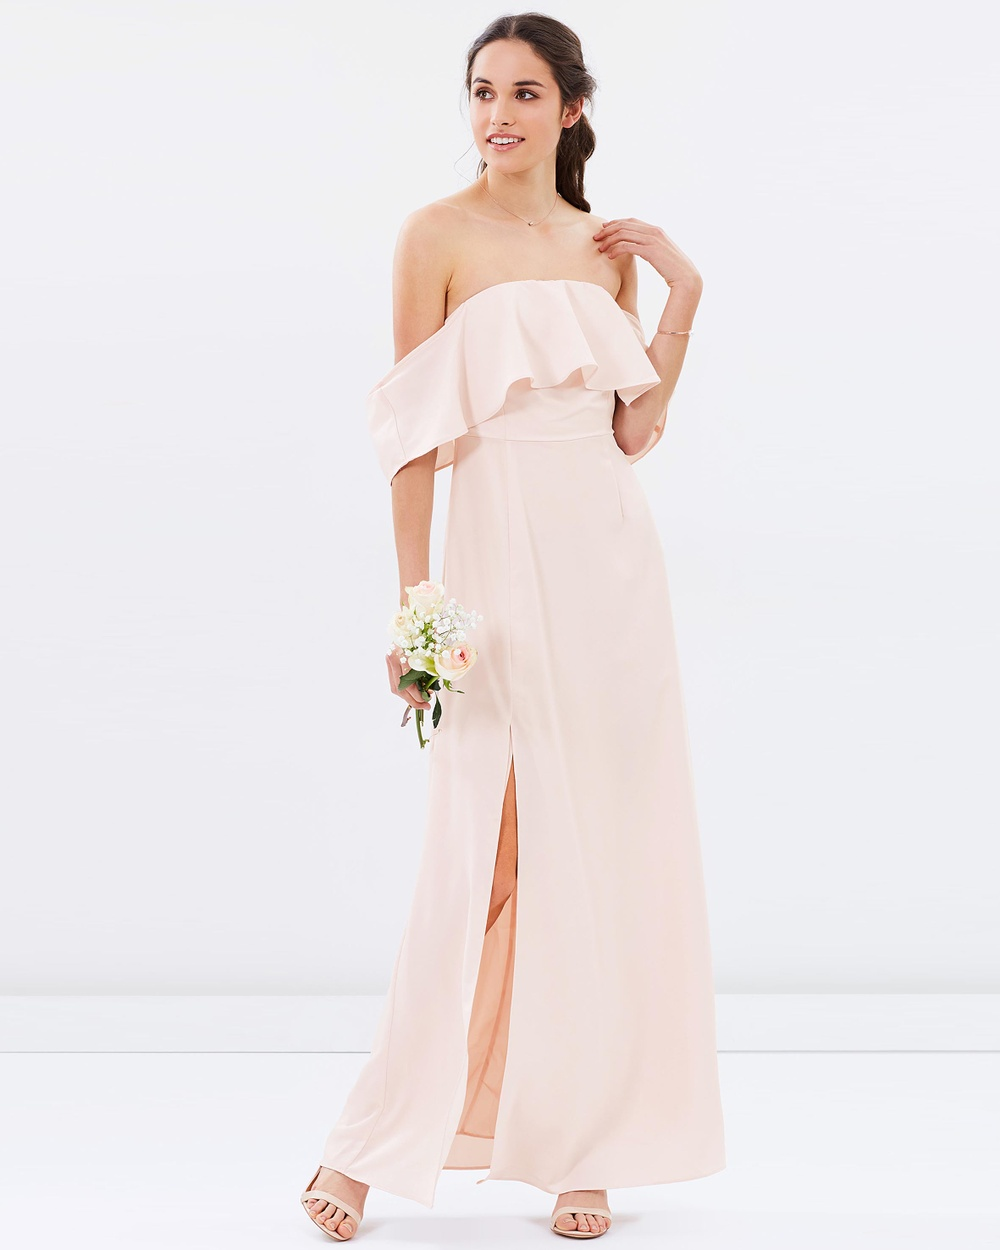 Atmos & Here ICONIC EXCLUSIVE Aurora Off Shoulder Maxi Dress Bridesmaid Dresses Champagne ICONIC EXCLUSIVE Aurora Off Shoulder Maxi Dress